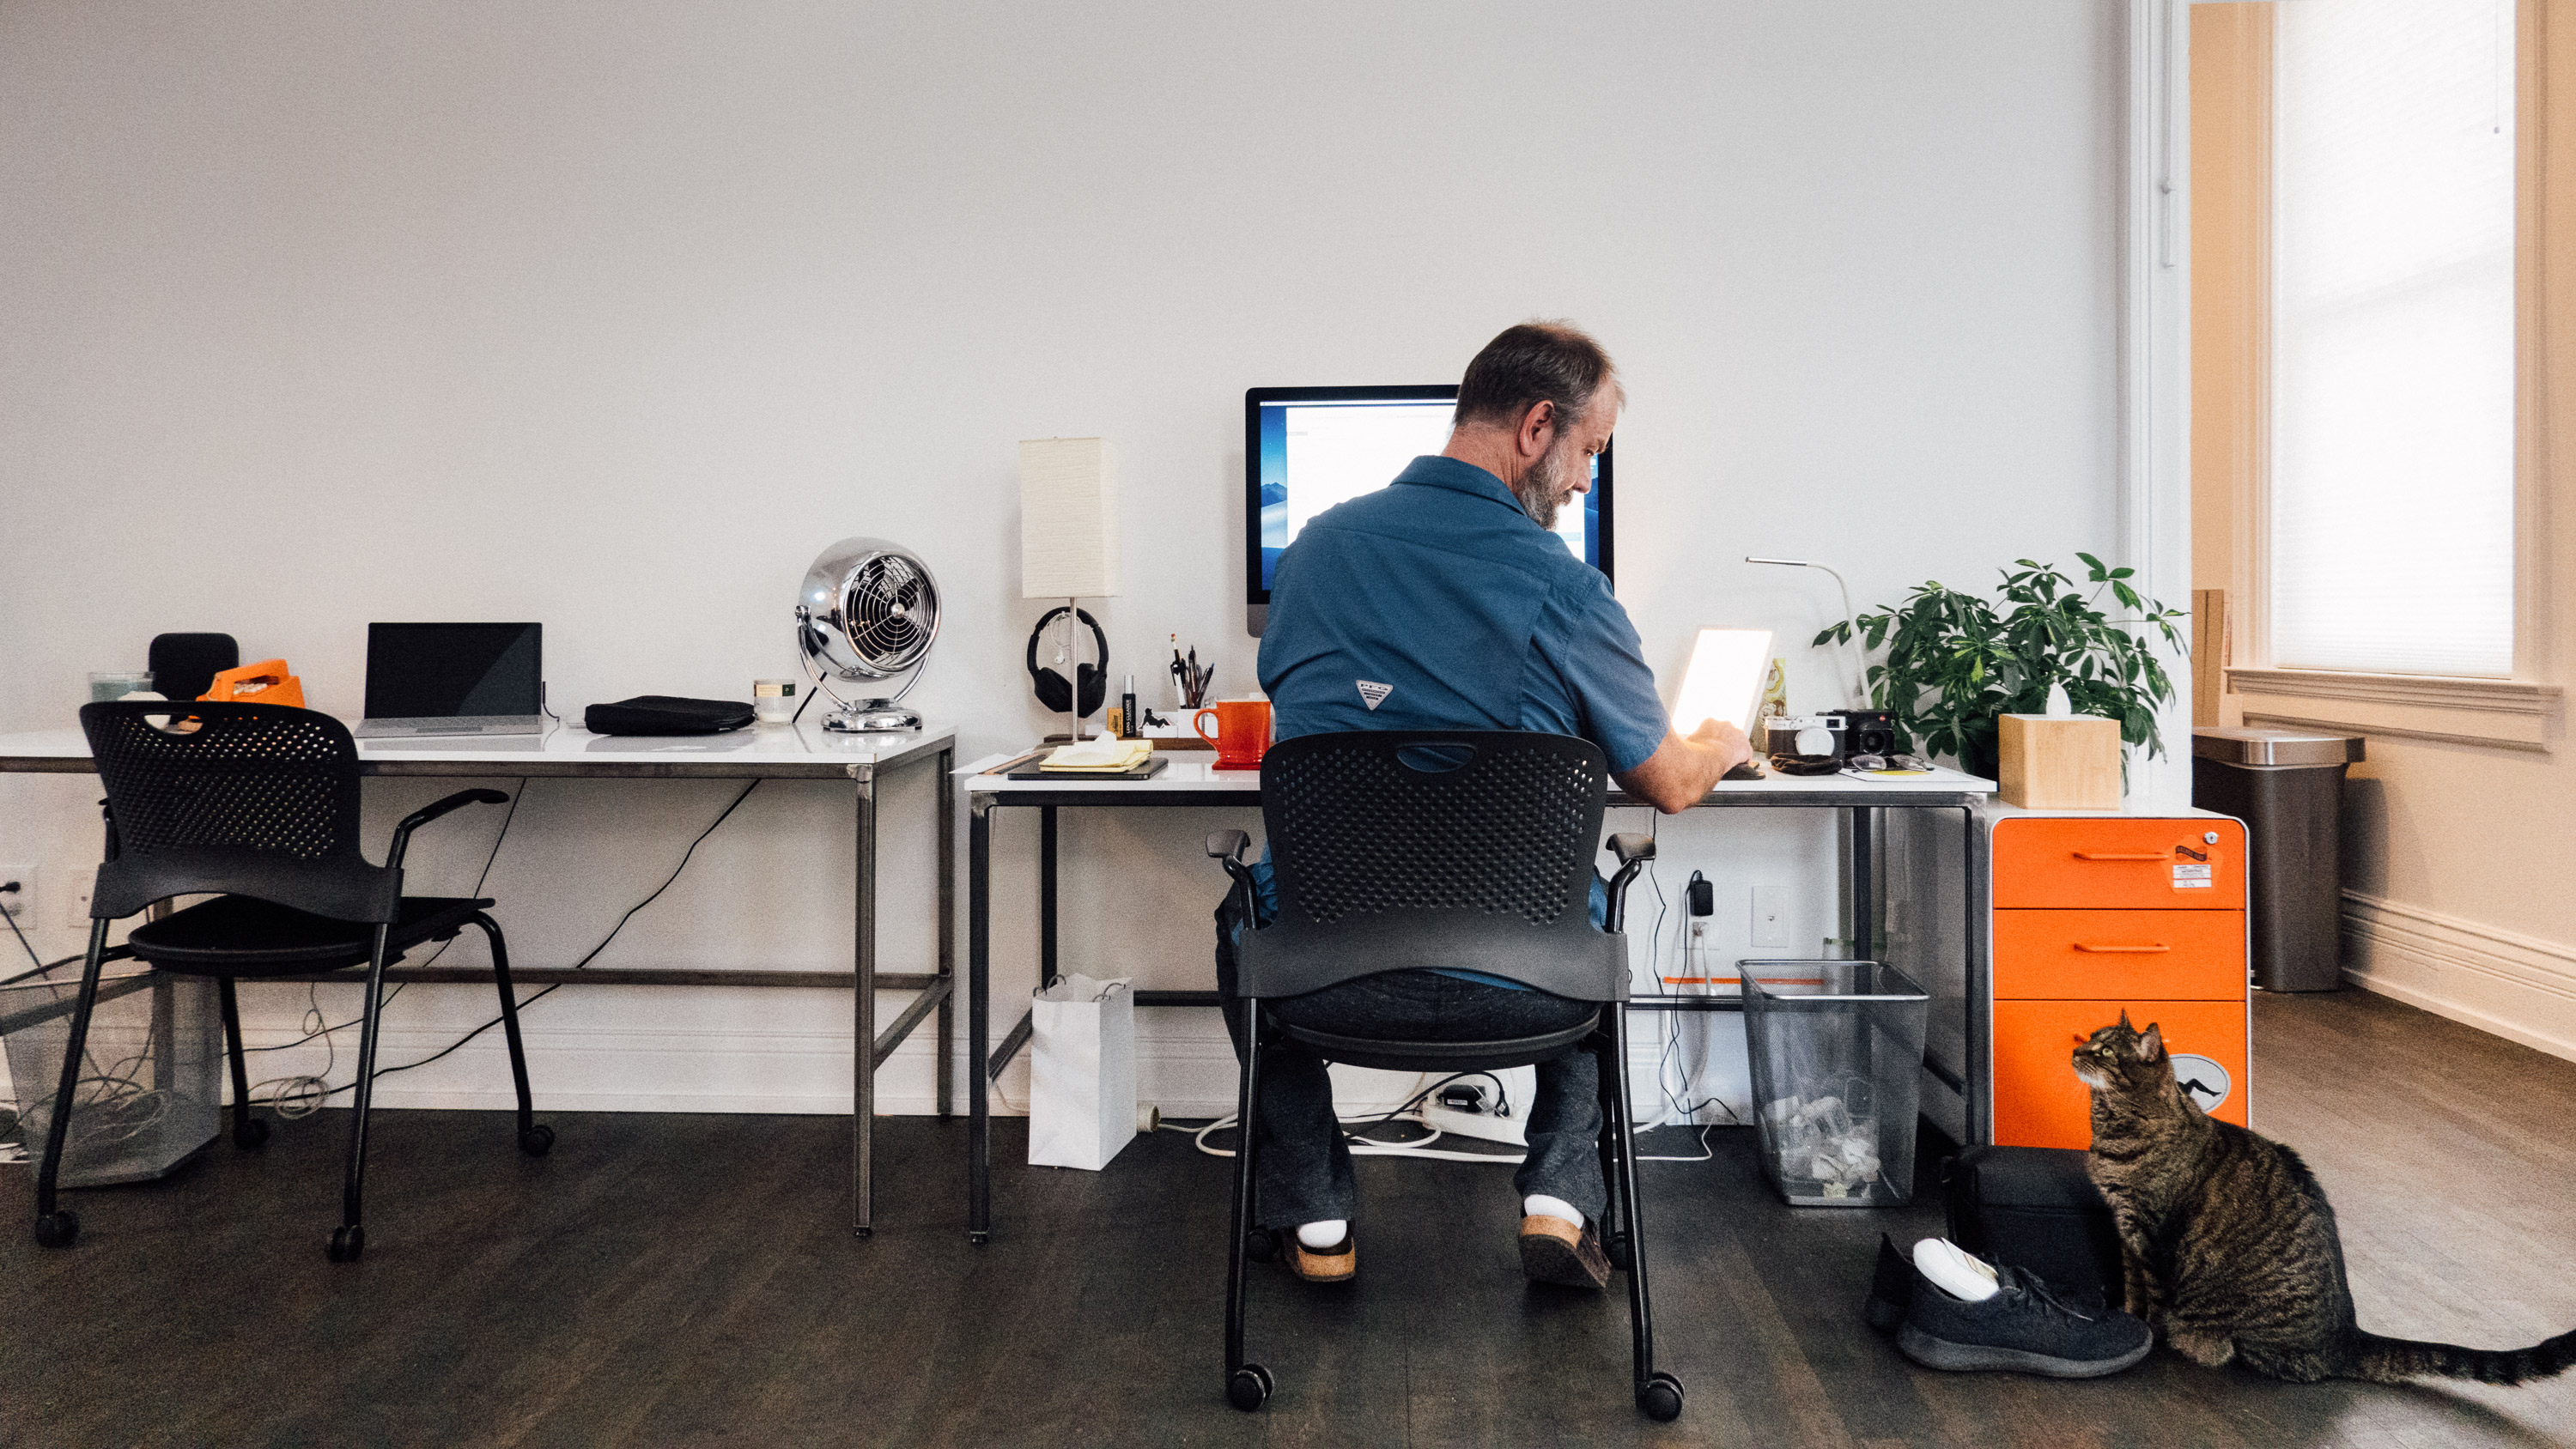 Man with socks and sandals at a desk with computer regards cat